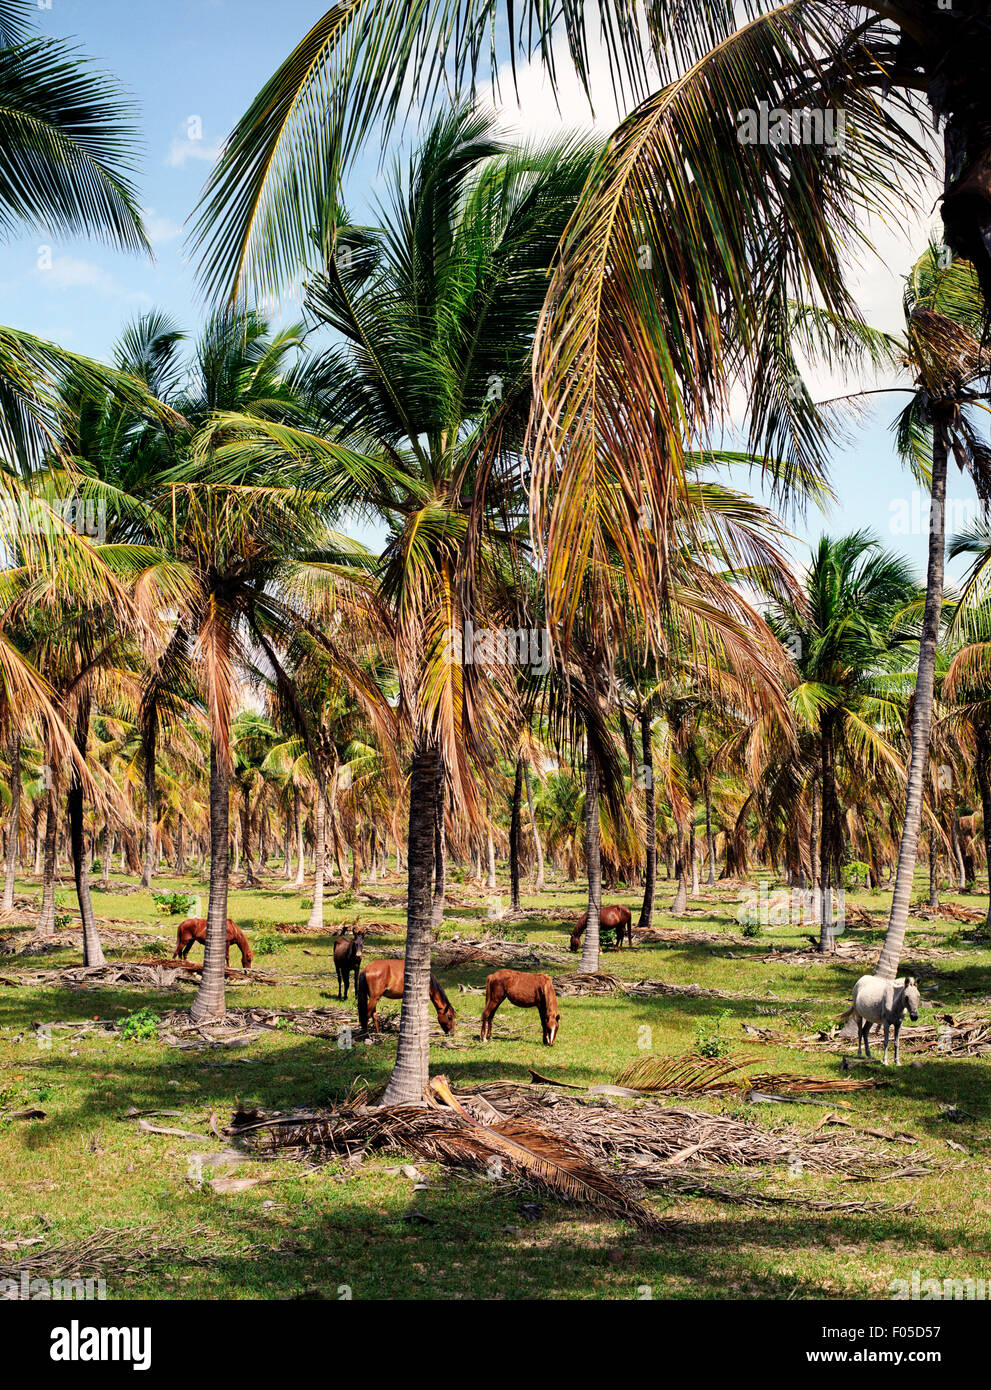 Horses graze in a field of palm trees, near Jericoacara Brazil Northern Brazil - Stock Image